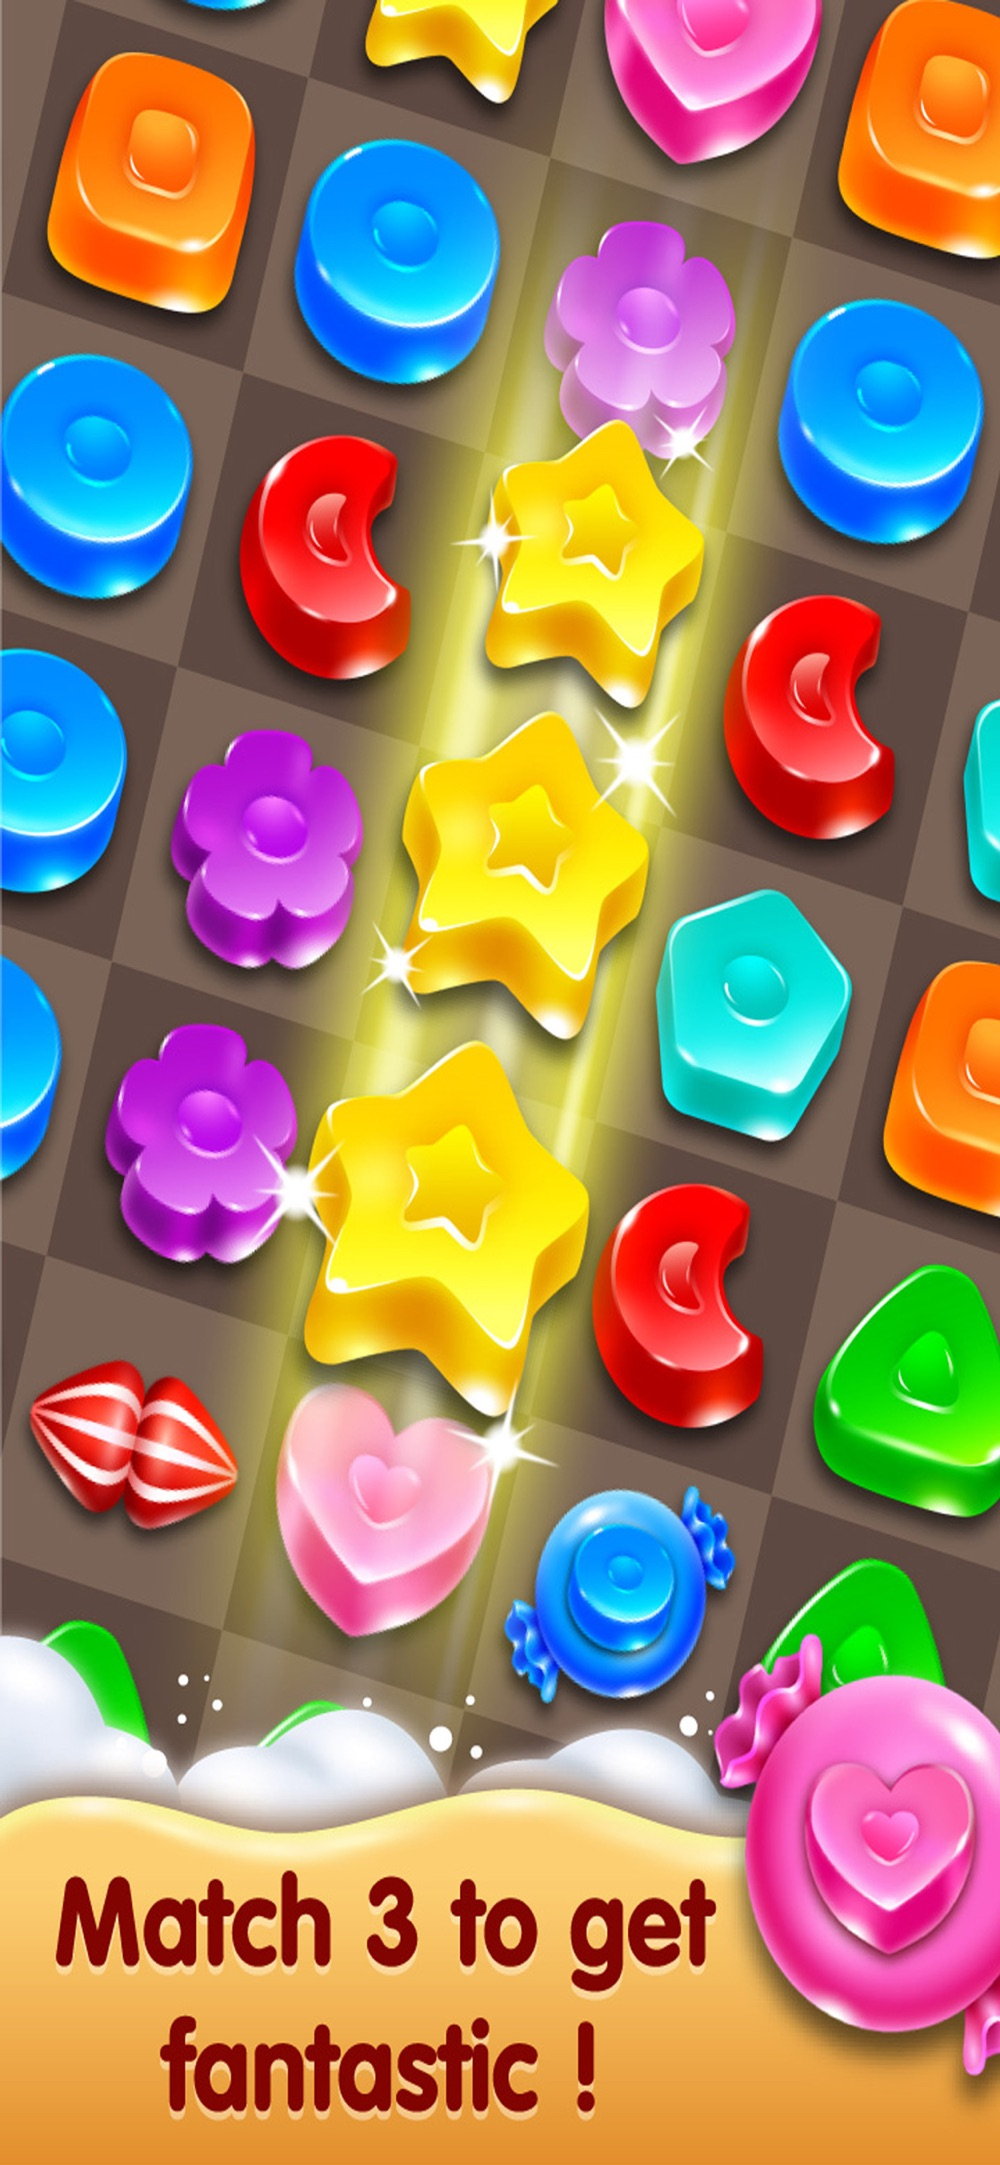 Cookie Paradise – Sweet Puzzle Cheat Codes